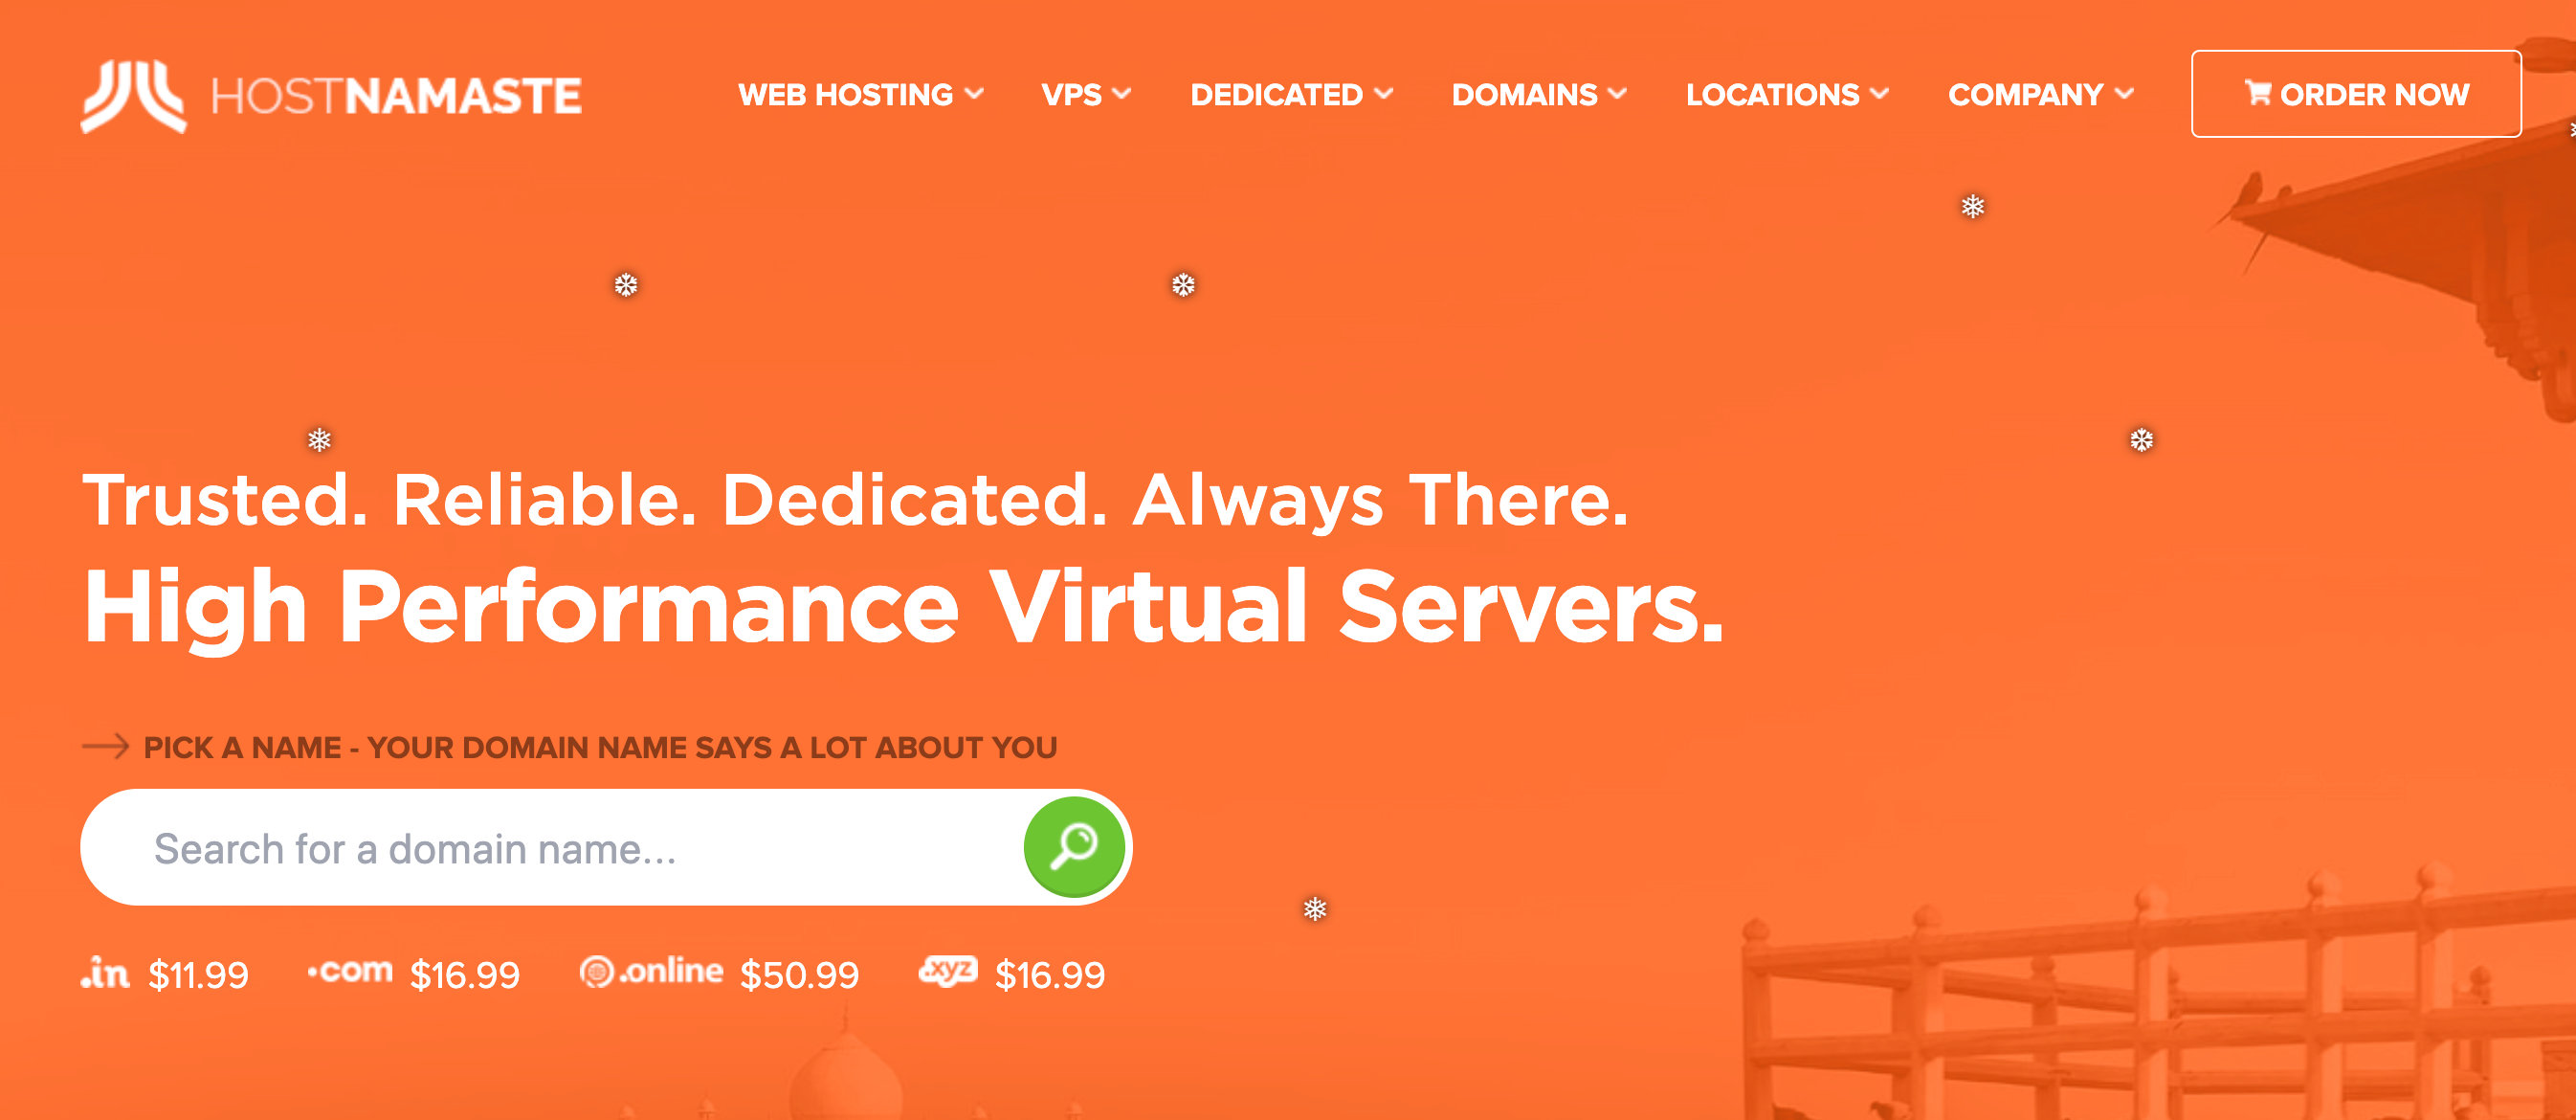 HostNamaste Review- Affordable Web Hosting